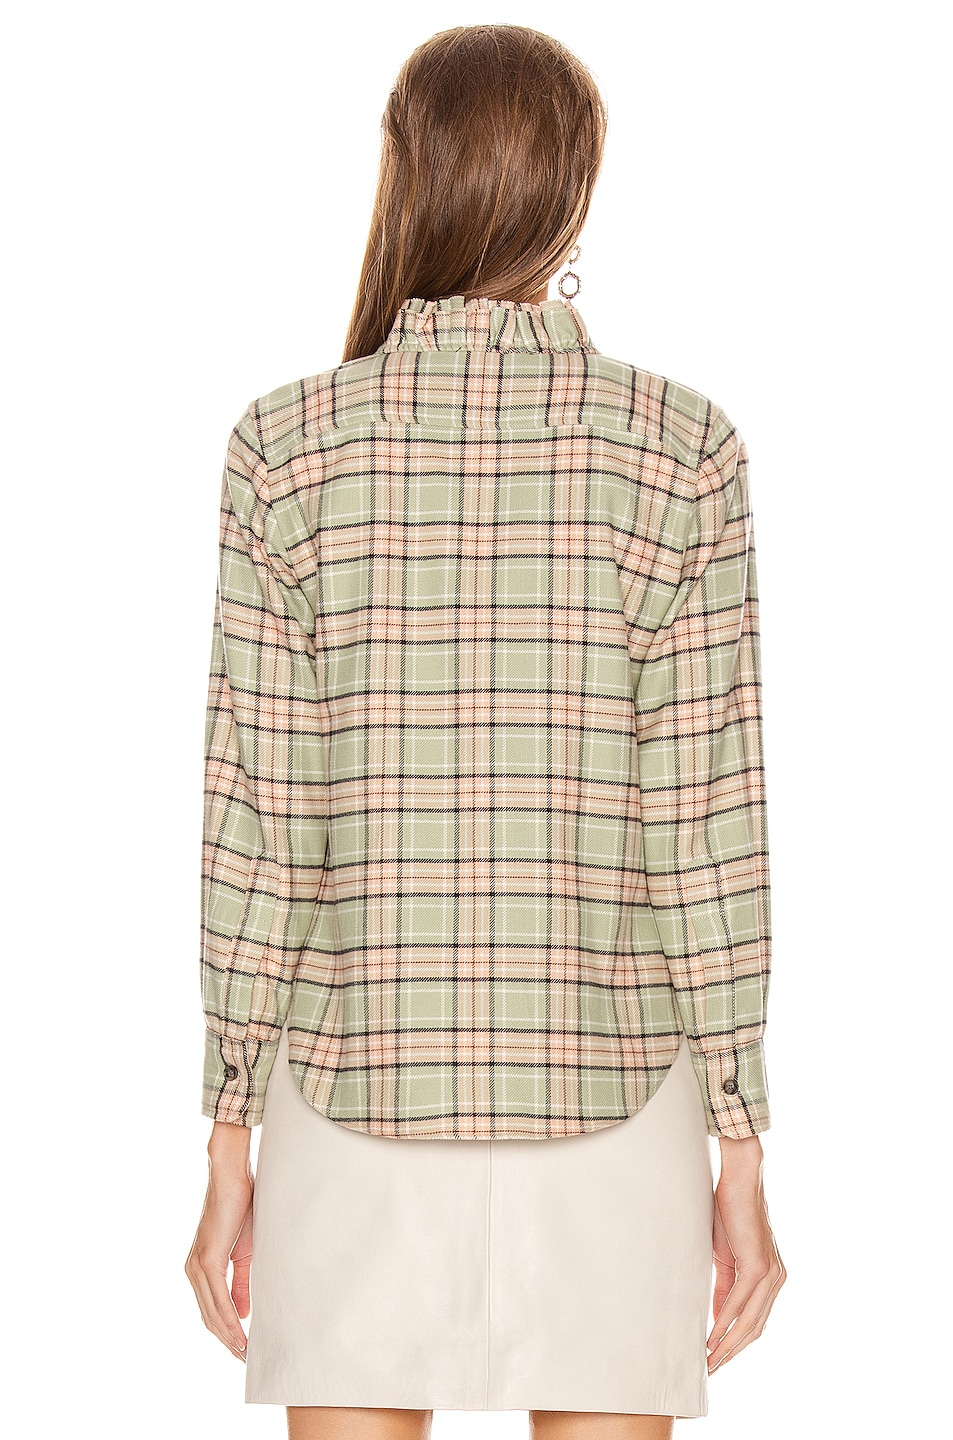 Image 3 of Isabel Marant Etoile Awendy Shirt in Almond & Pink